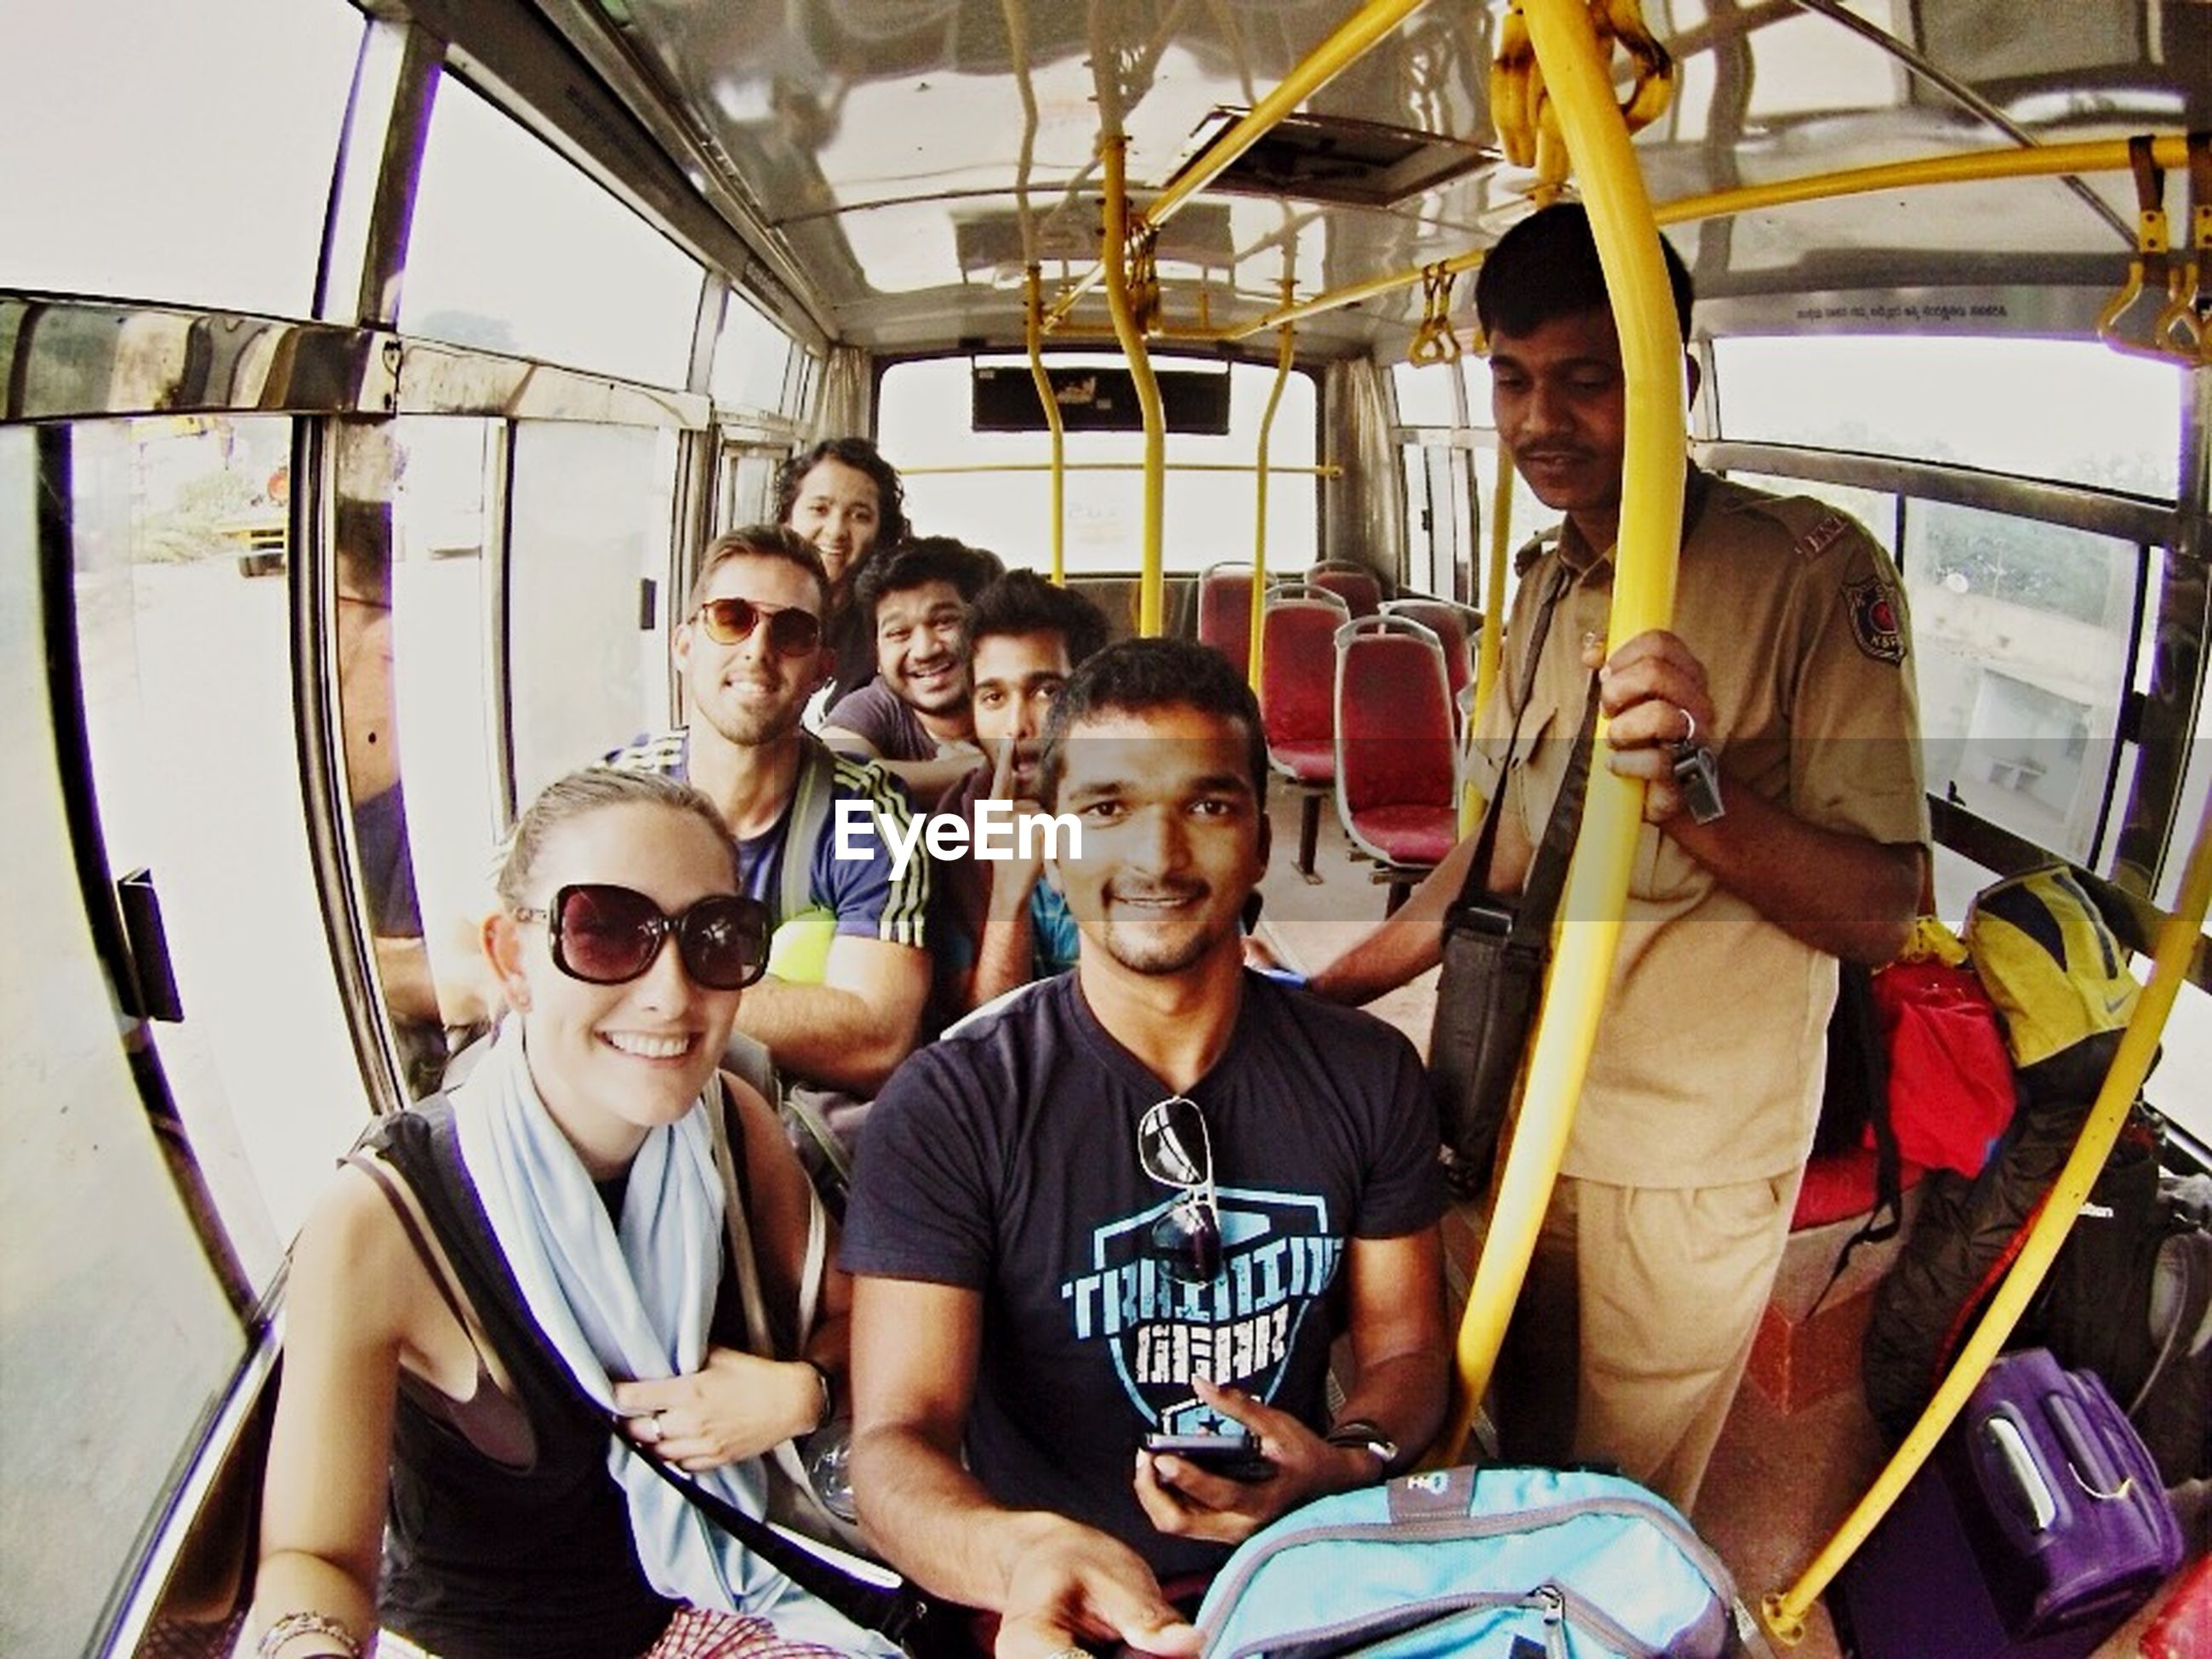 lifestyles, leisure activity, togetherness, person, enjoyment, bonding, casual clothing, young men, friendship, happiness, fun, young adult, transportation, smiling, love, portrait, looking at camera, sitting